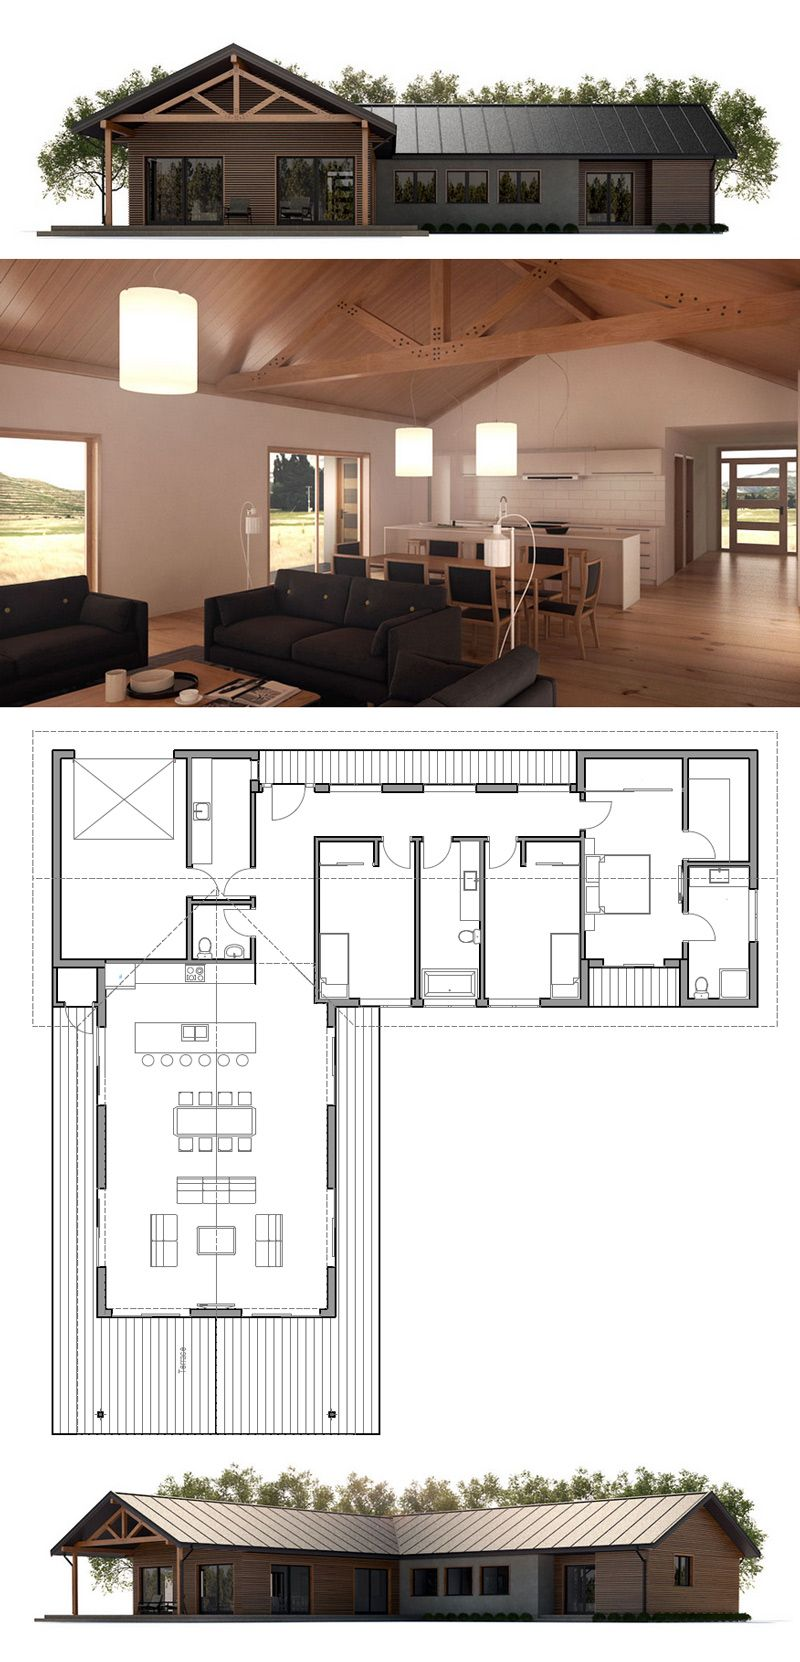 plan de maison plans de maisons pinterest container house plans house and architecture. Black Bedroom Furniture Sets. Home Design Ideas